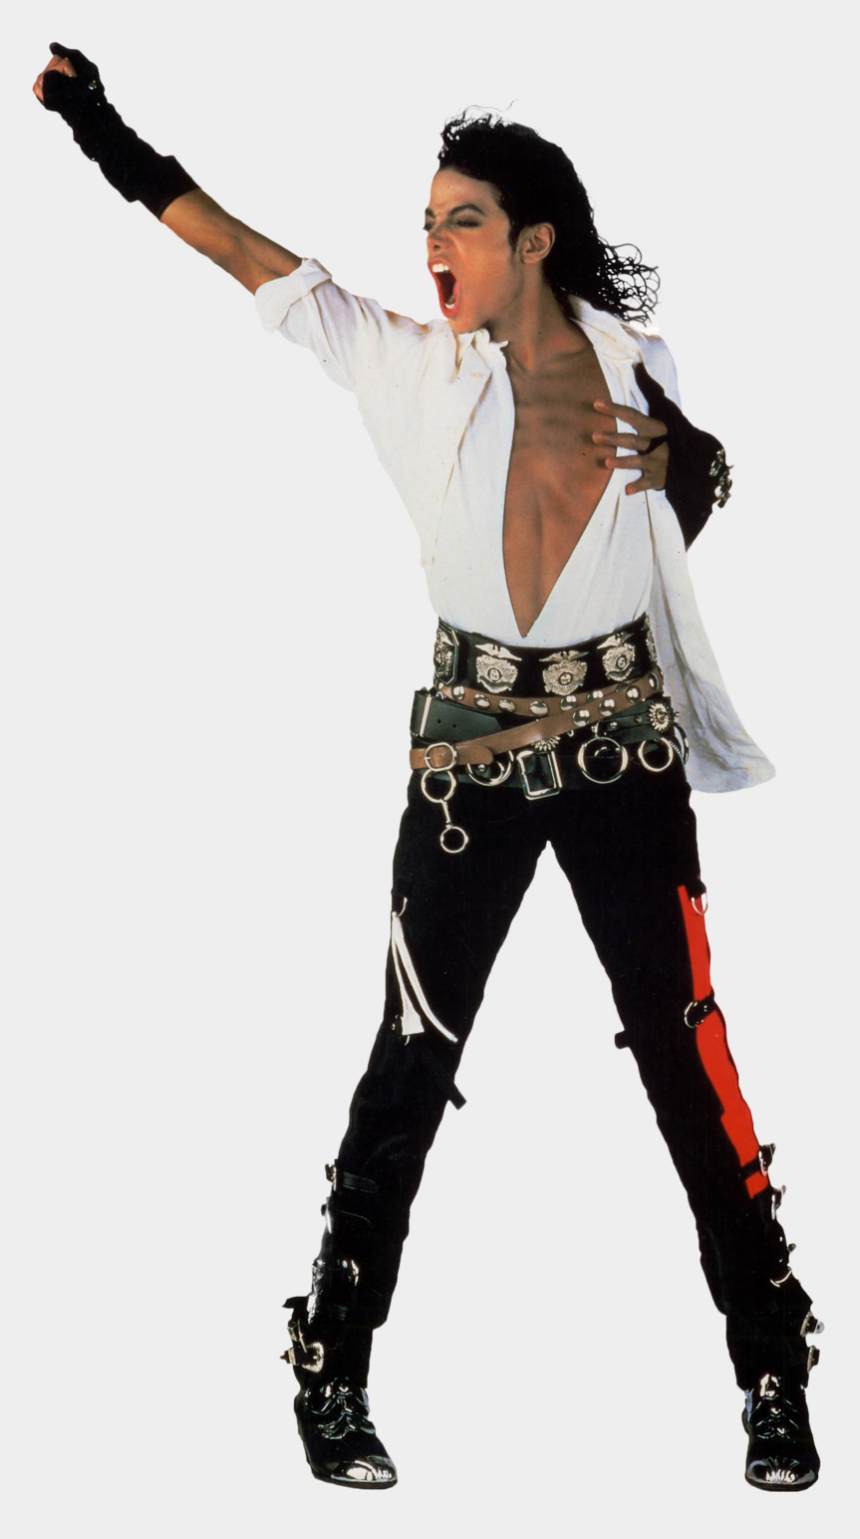 vuclip mp3 download search, Cartoons - Png Image Pinterest - Michael Jackson Dirty Diana